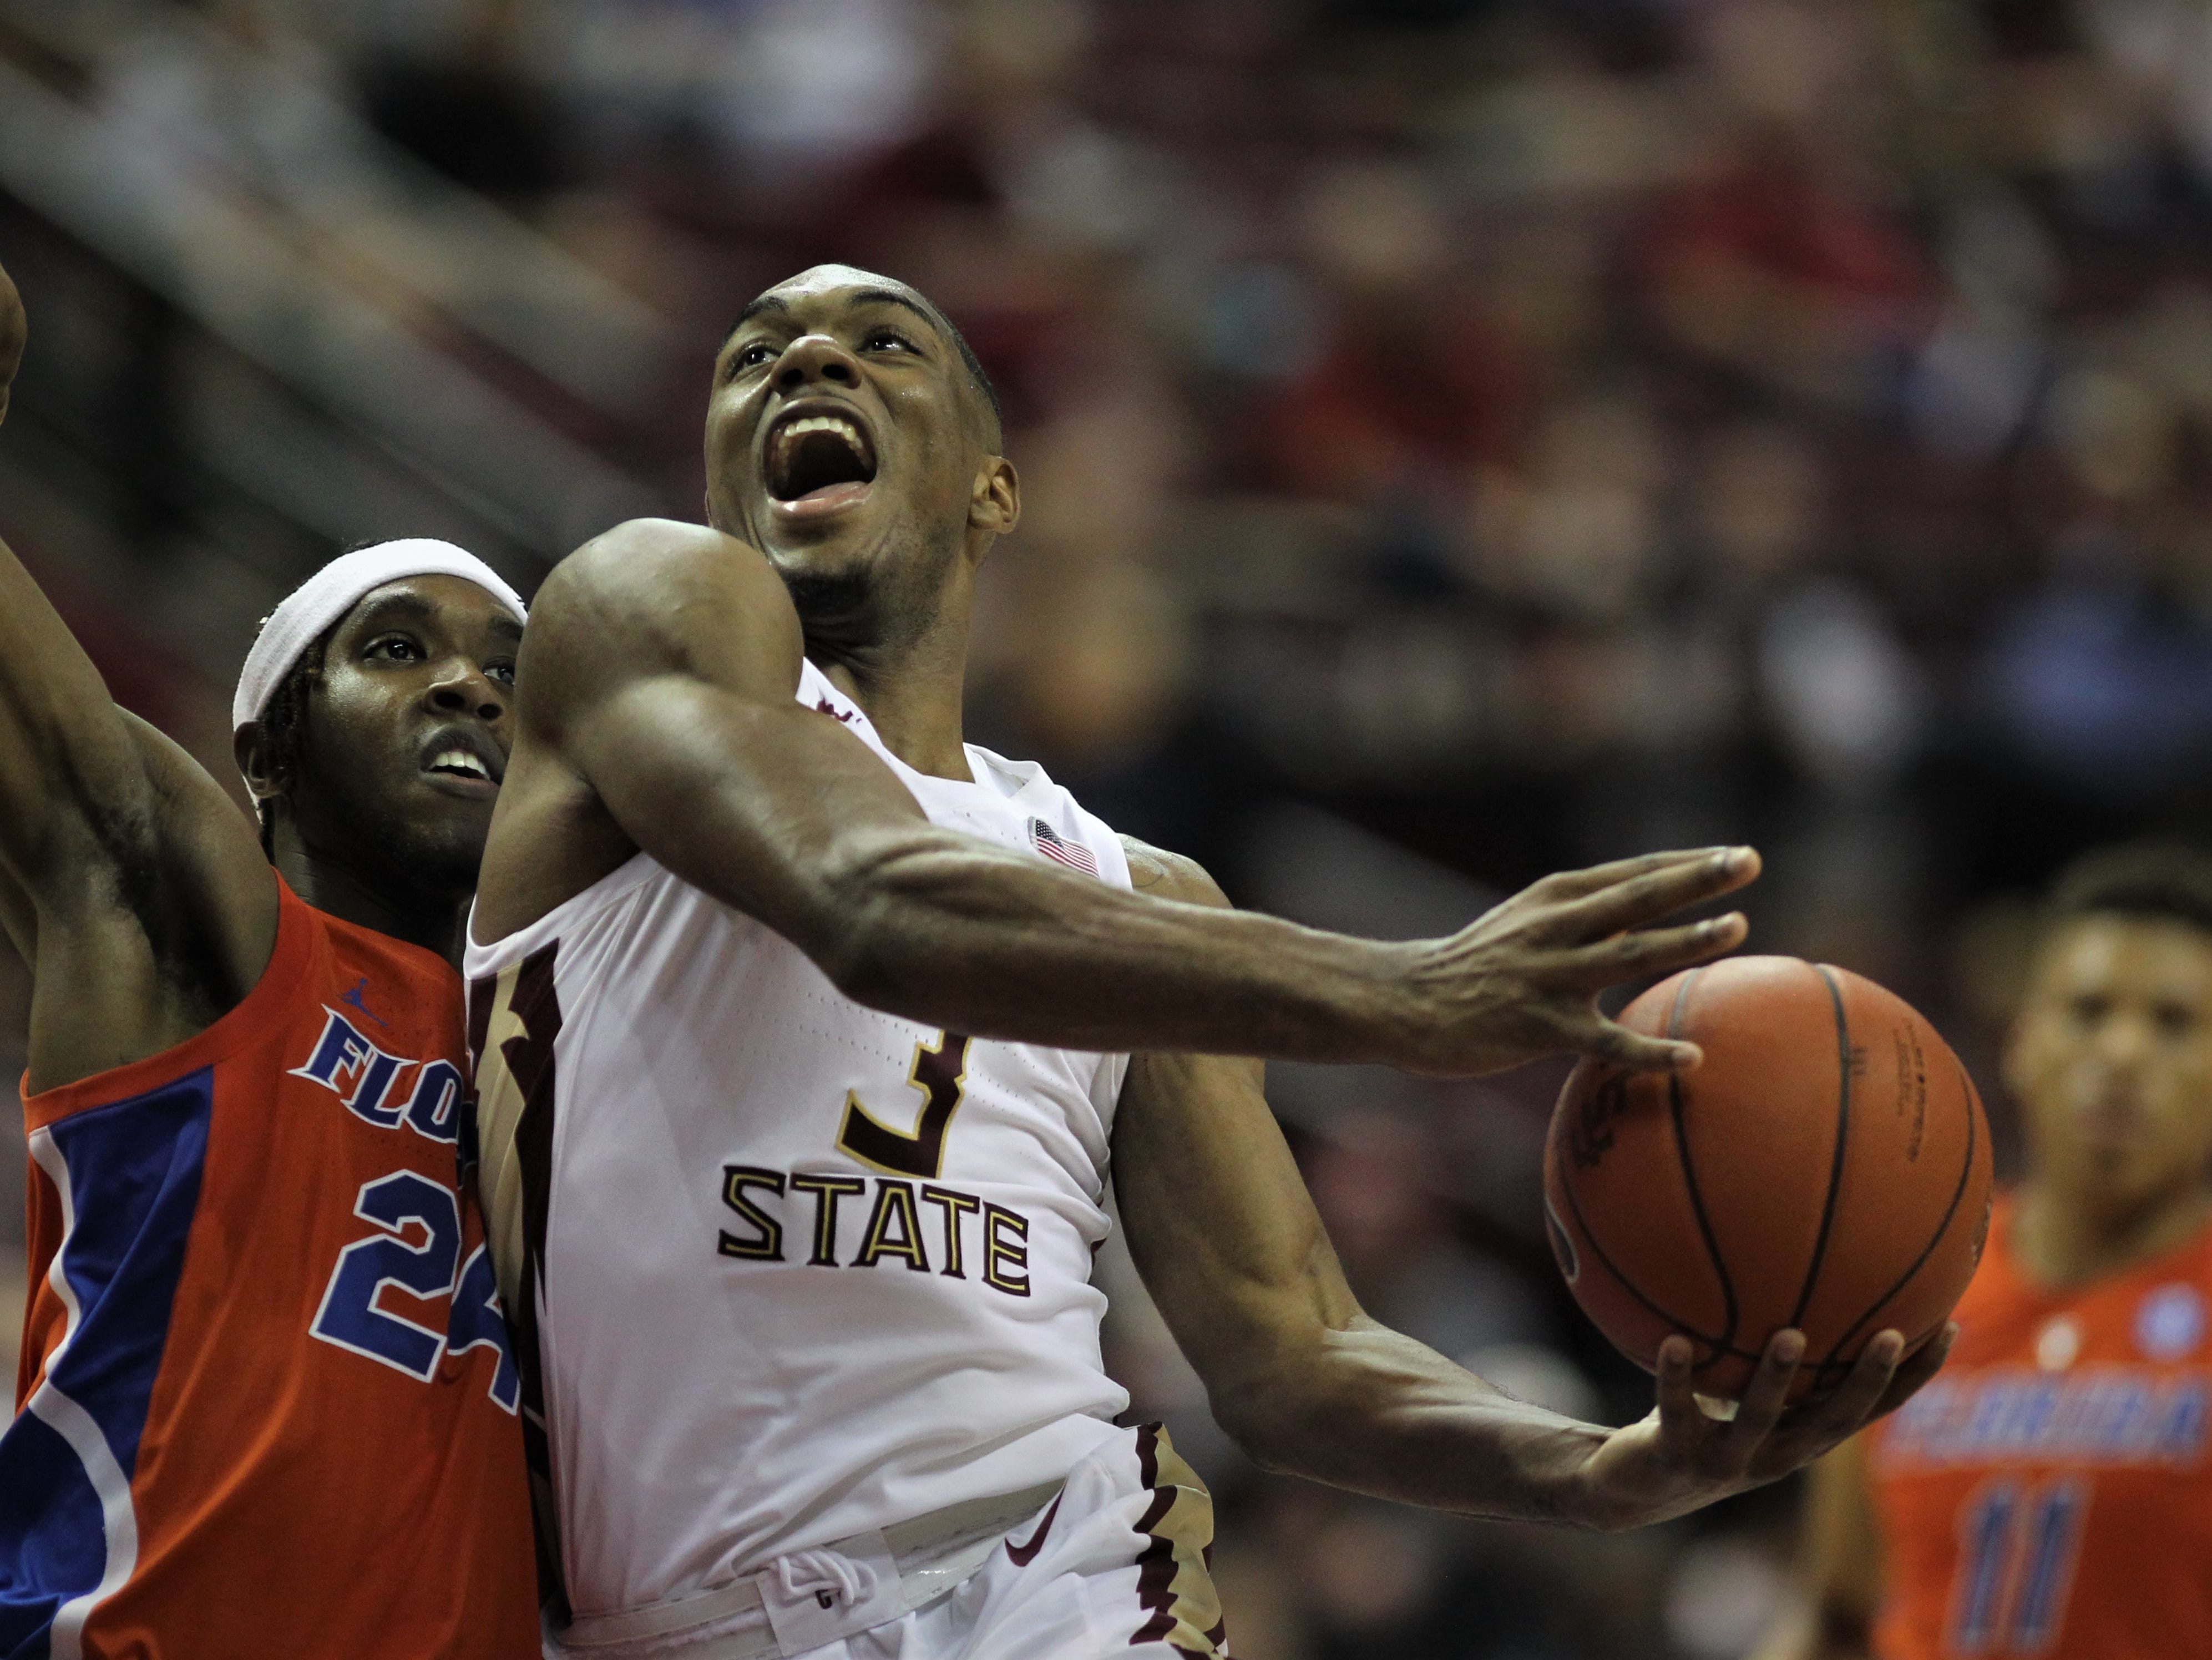 Florida State's Trent Forrest glides through the air for a left-handed layup as a Florida player defends during the two teams' game at the Tucker Civic Center on Nov. 11, 2018.